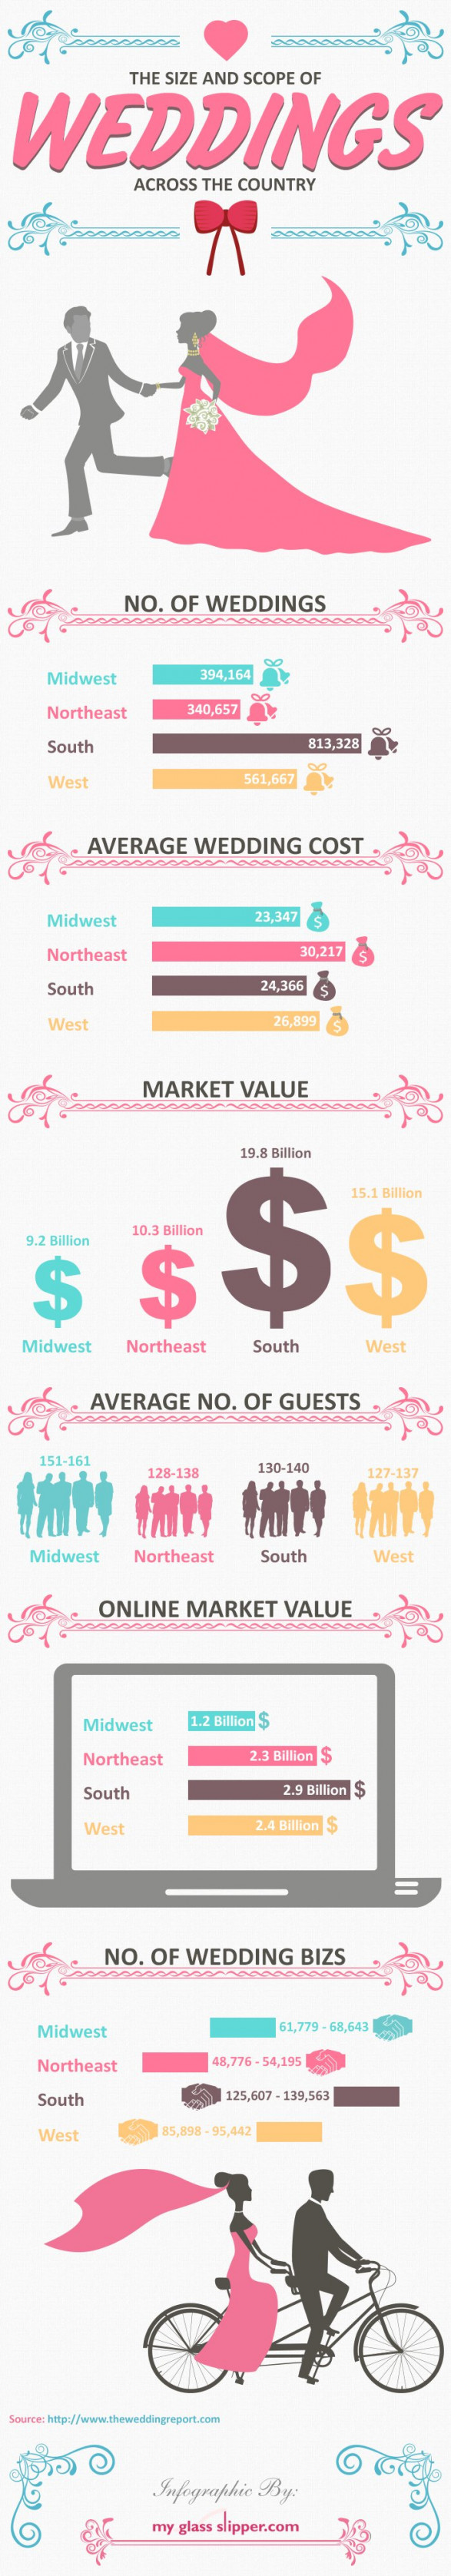 size and scope of wedding across united states